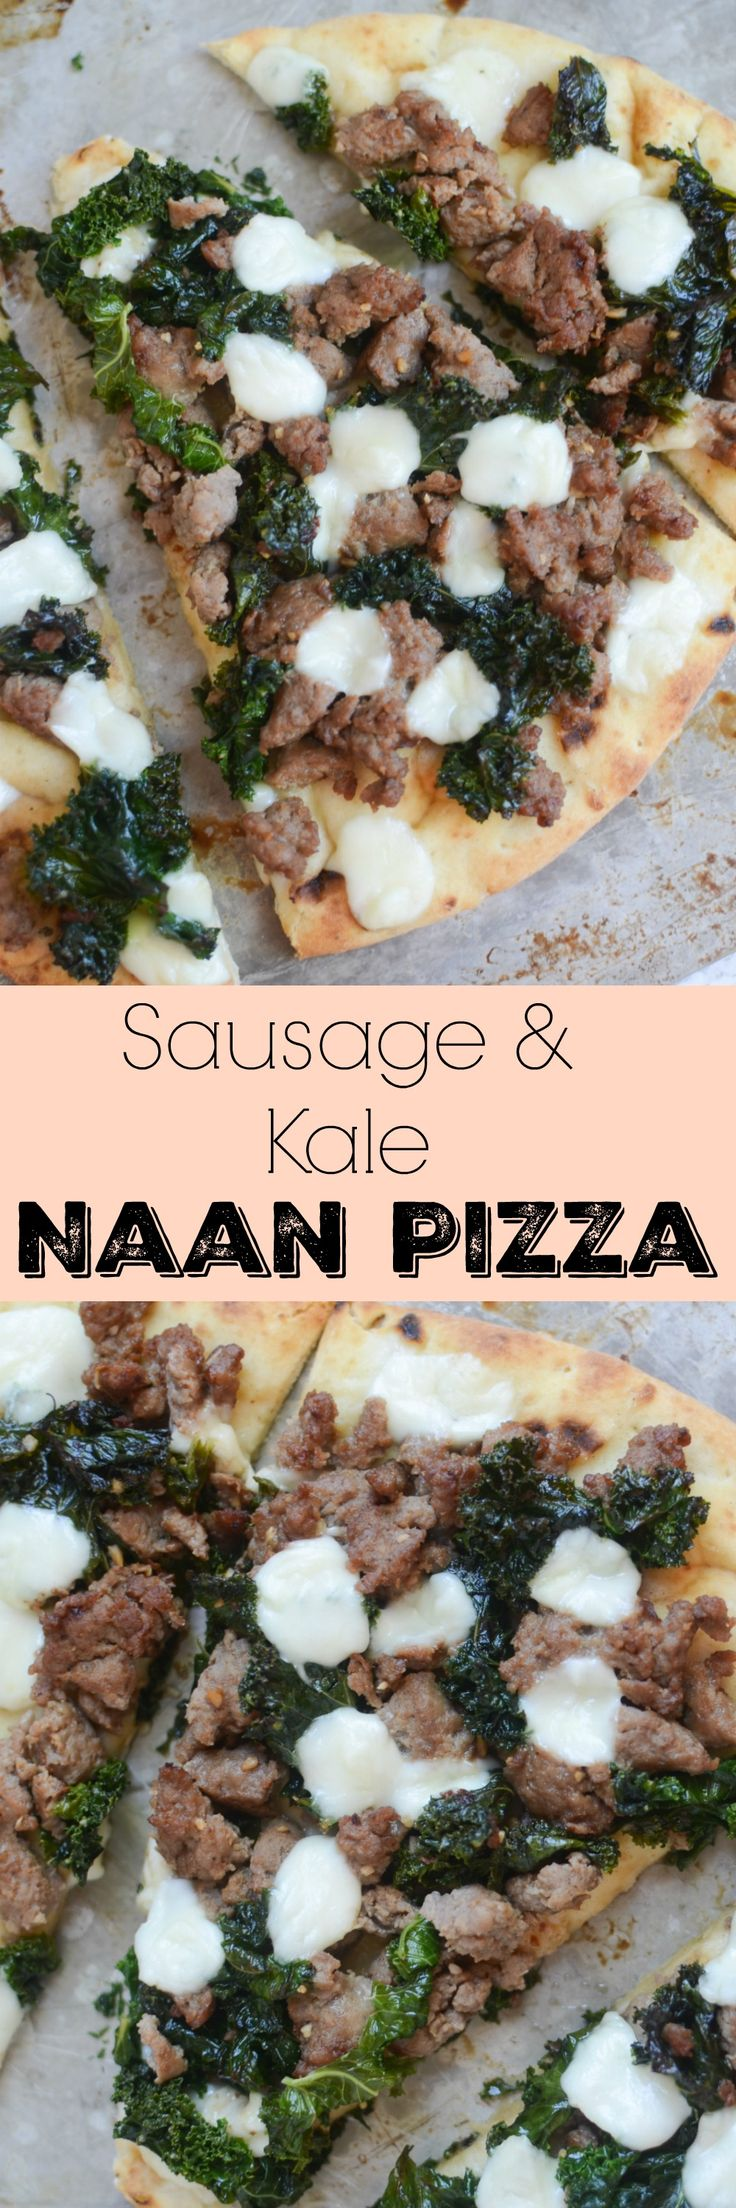 Sausage and Kale Naan Pizza - an easy and healthy way to do pizza night! Turkey sausage, kale, and mozzarella on top of delicious naan bread!